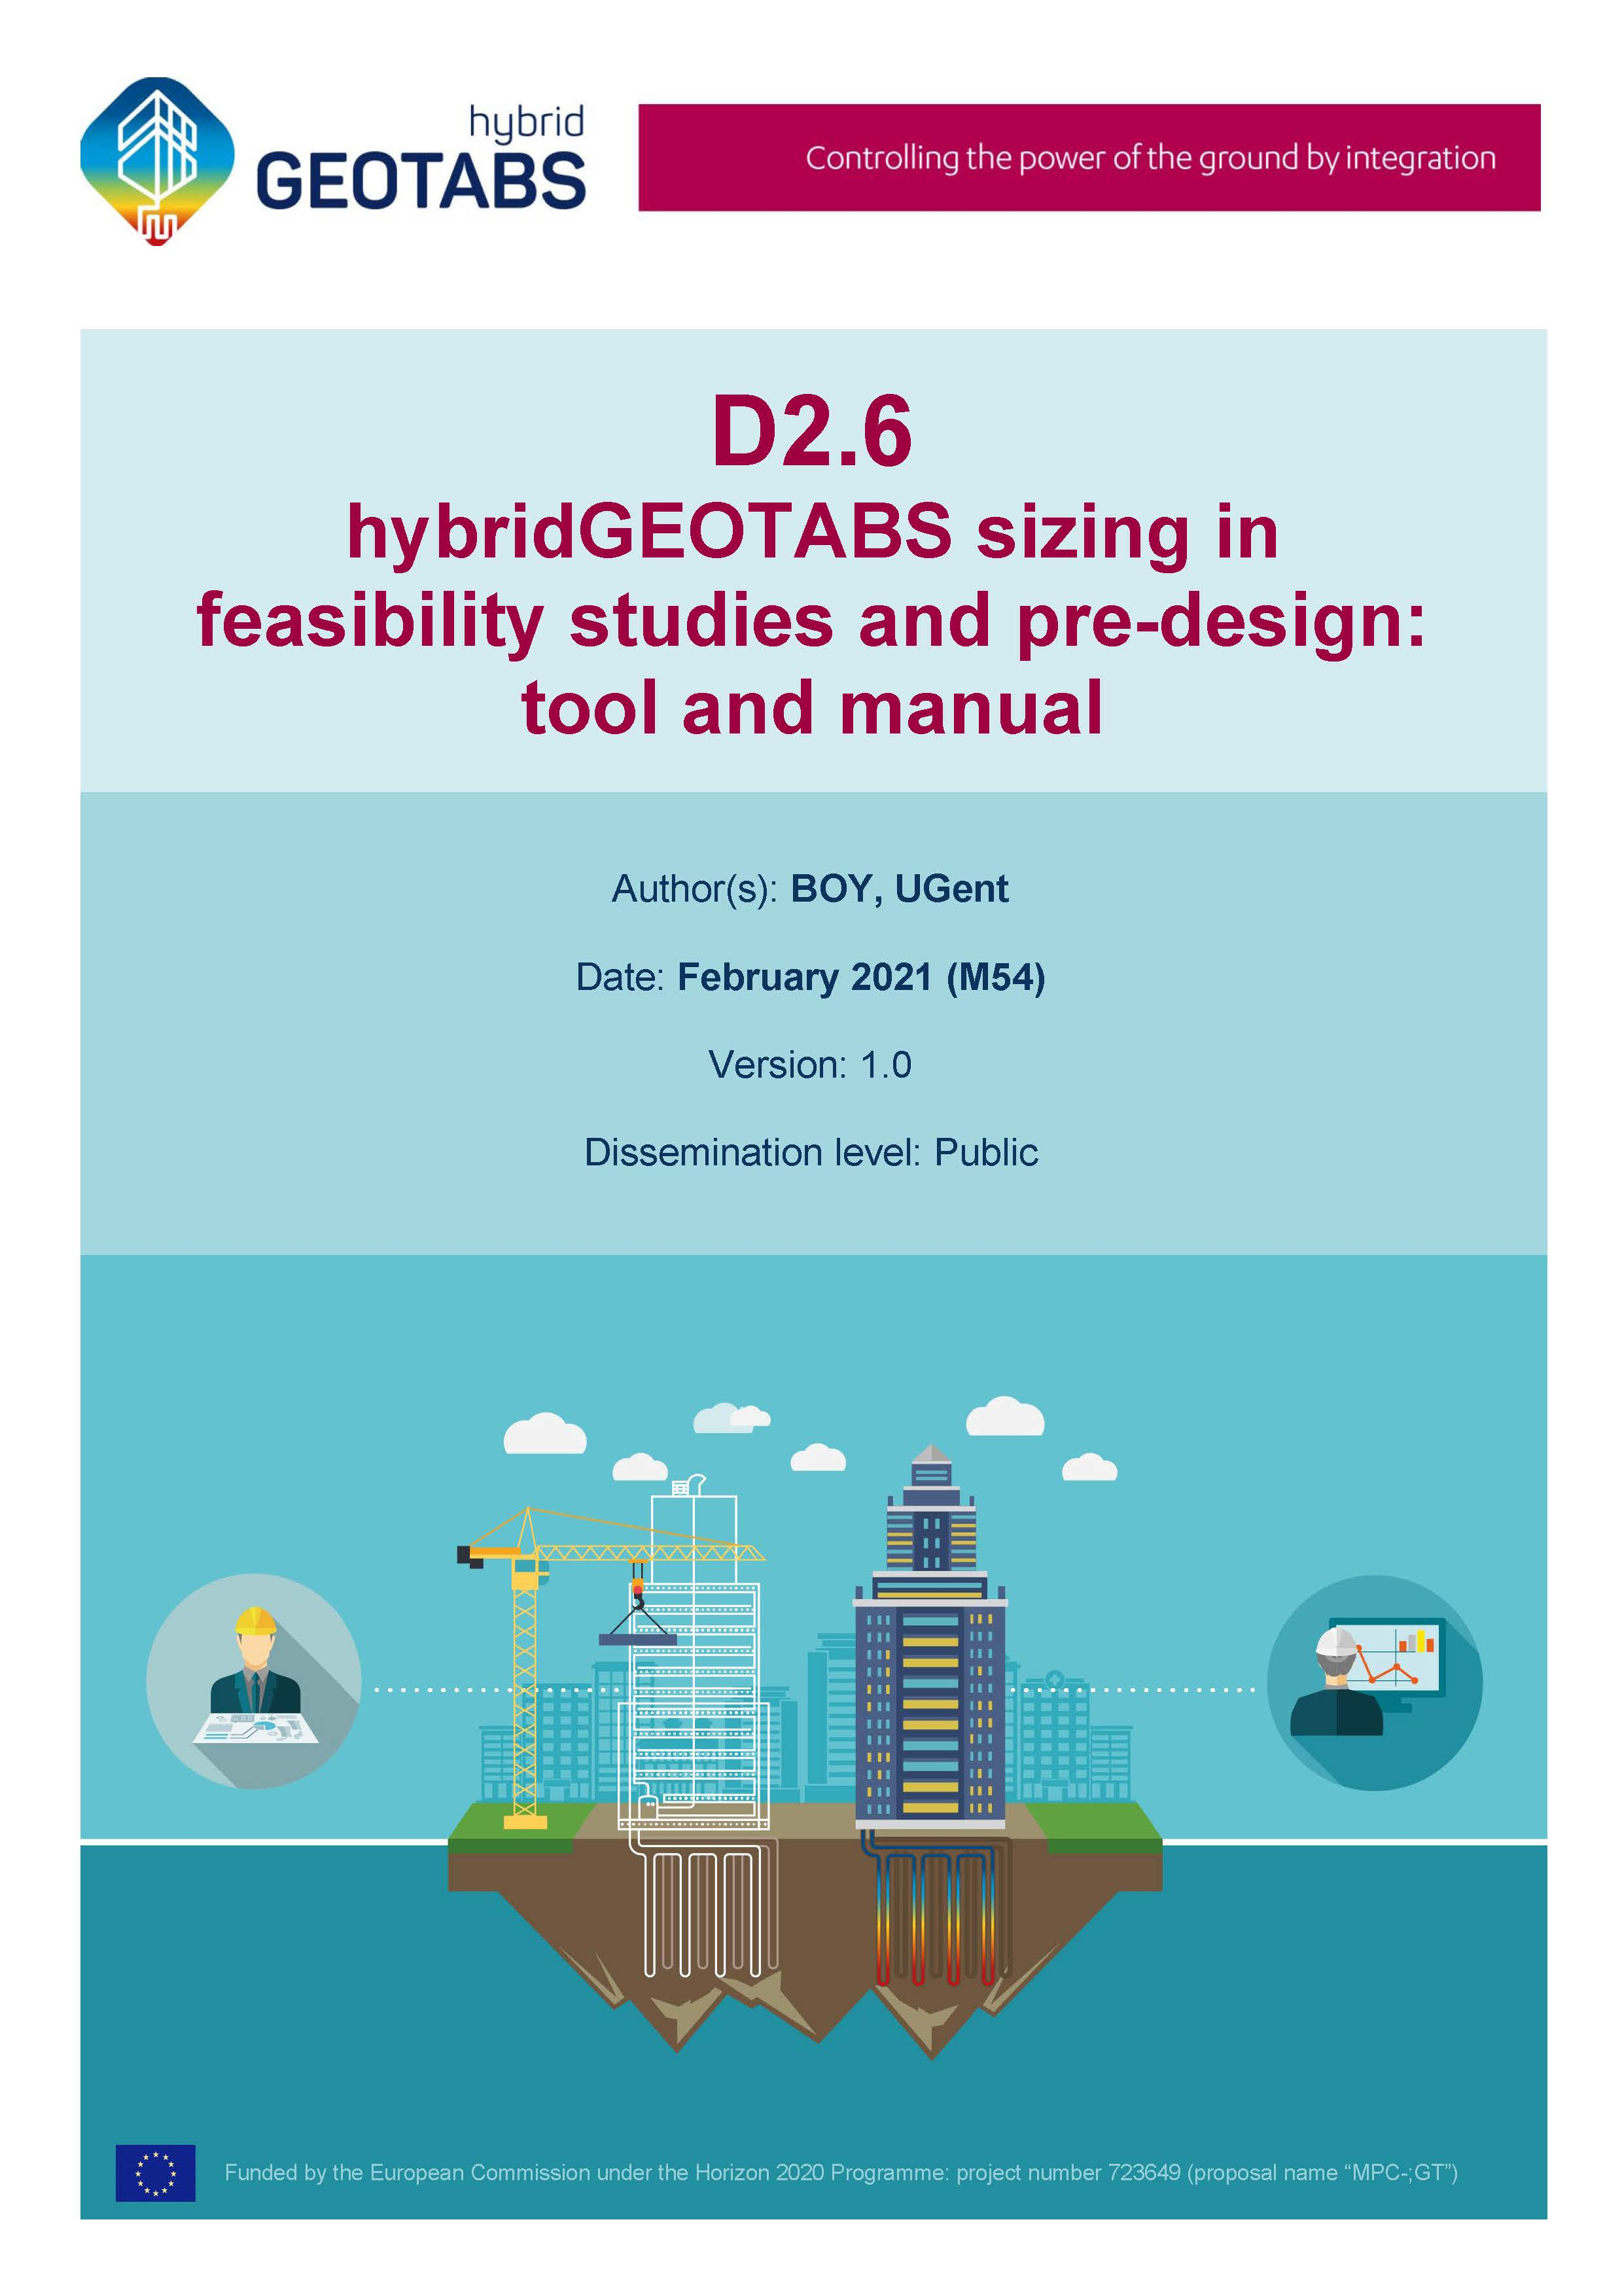 D2.6 hybridGEOTABS sizing in feasibility studies and pre-design: tool and manual